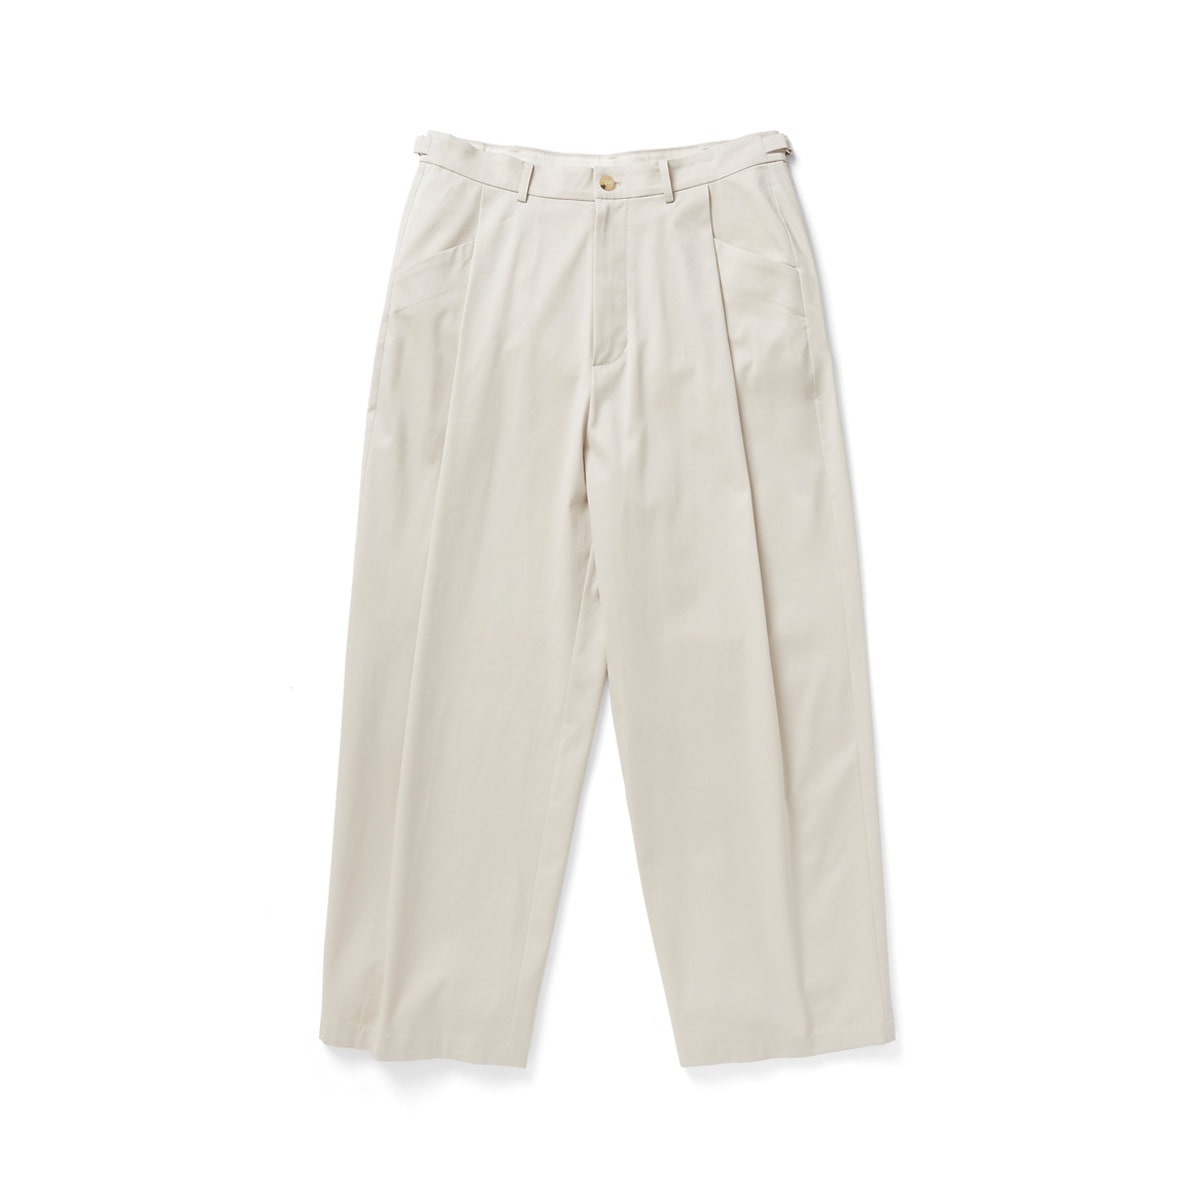 [YOUTH] STRUCTURED WIDE PANTS 'IVORY'